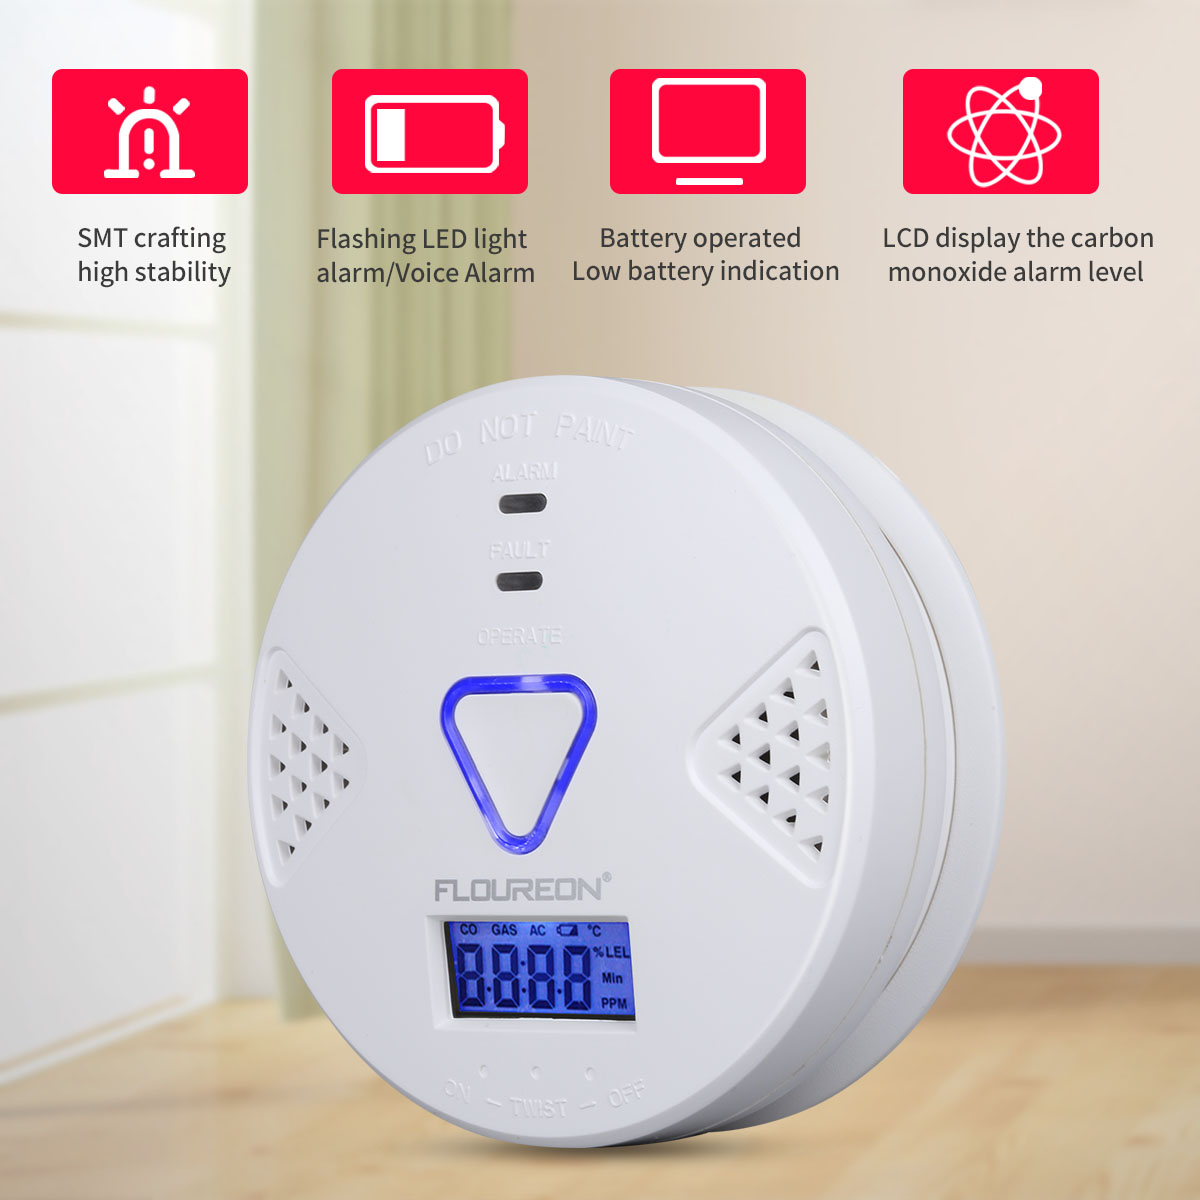 2pcs Floureon Carbon Monoxide Alarm CO Detector with Human Voice & LED Warning Digital Display Battery Operated Gas Detection